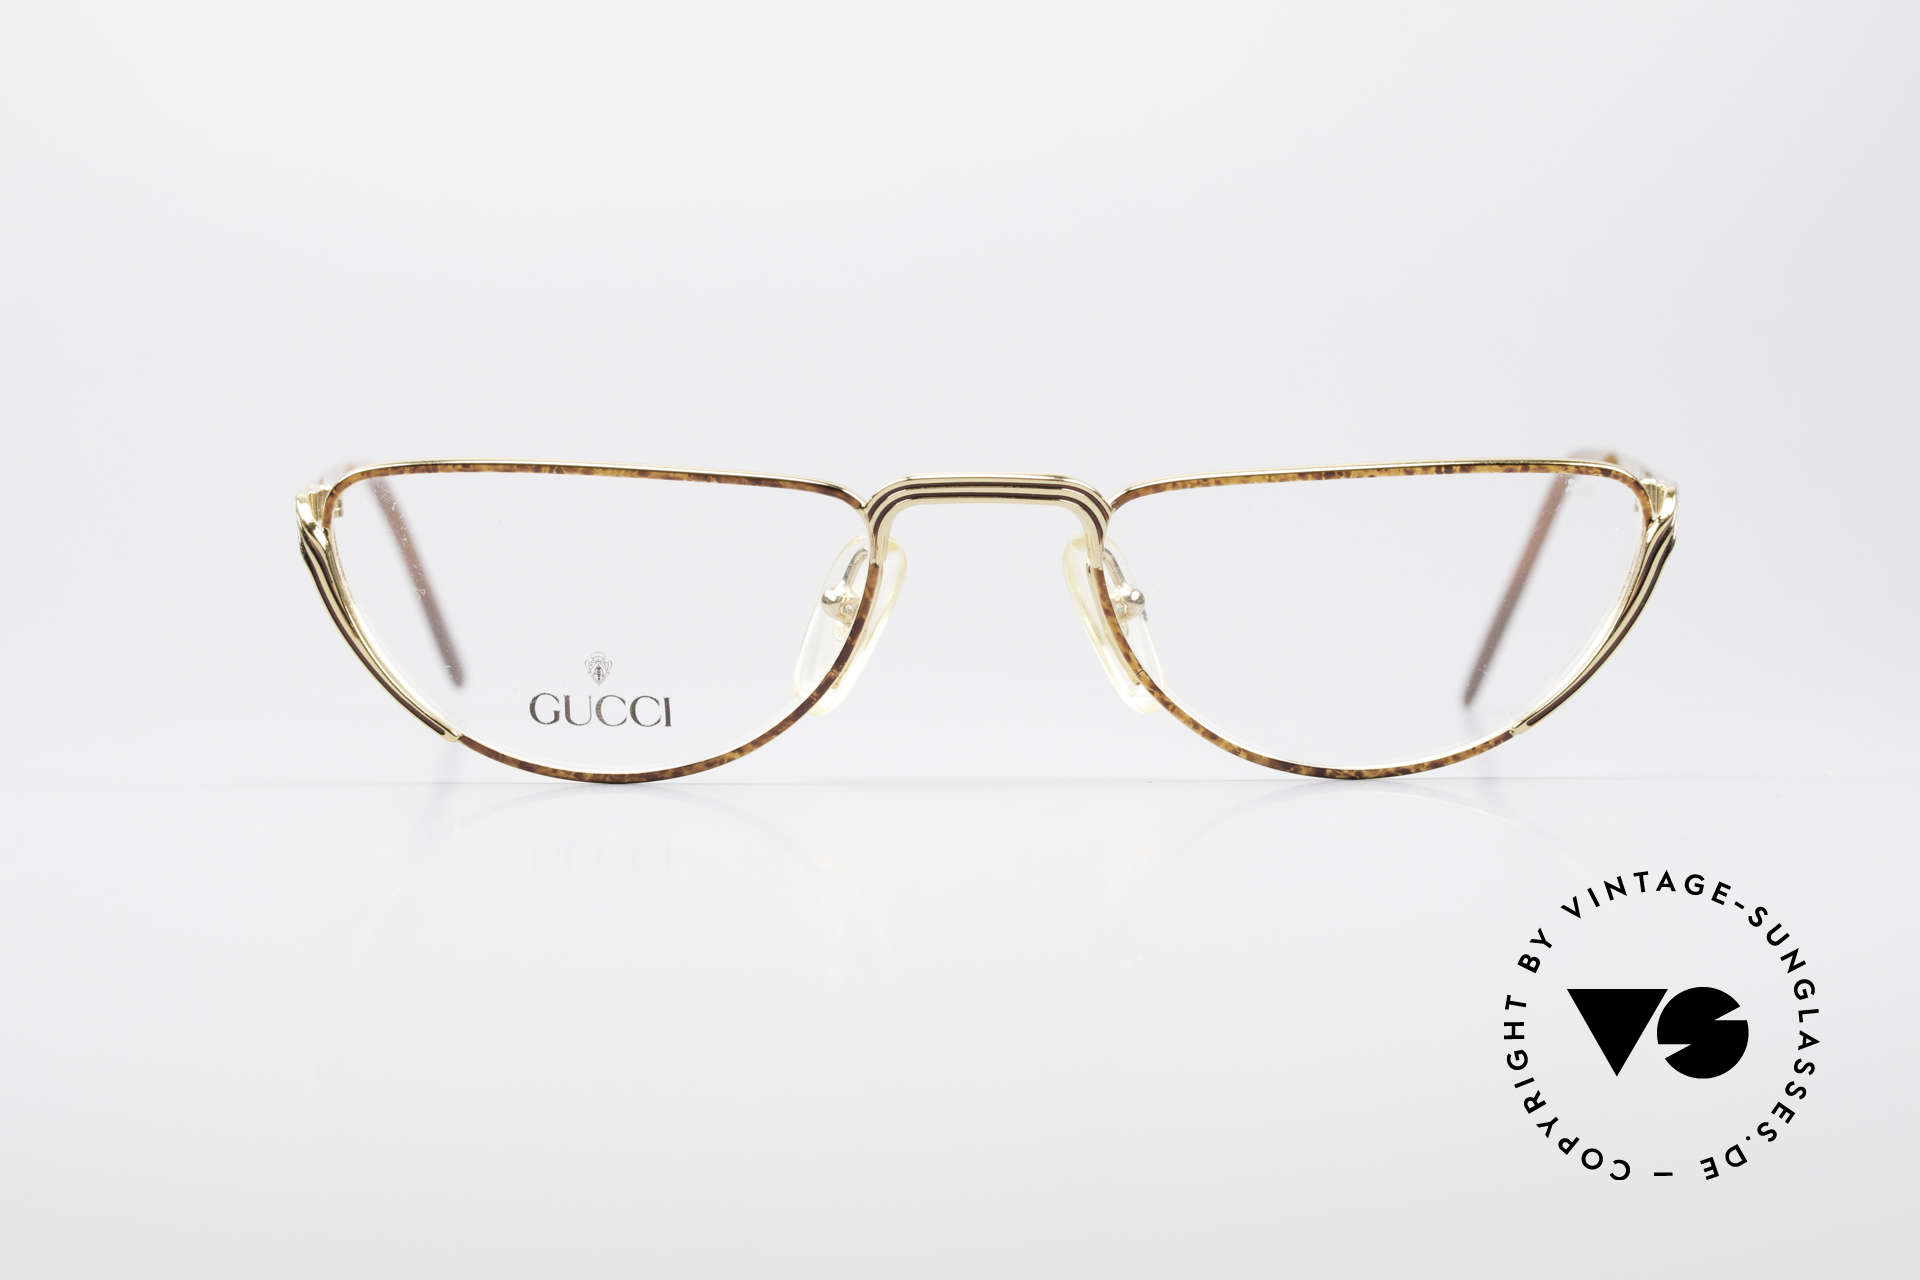 Gucci 2203 Vintage Reading Glasses 80's, a true rarity in high-end quality (+ Gucci case), Made for Men and Women